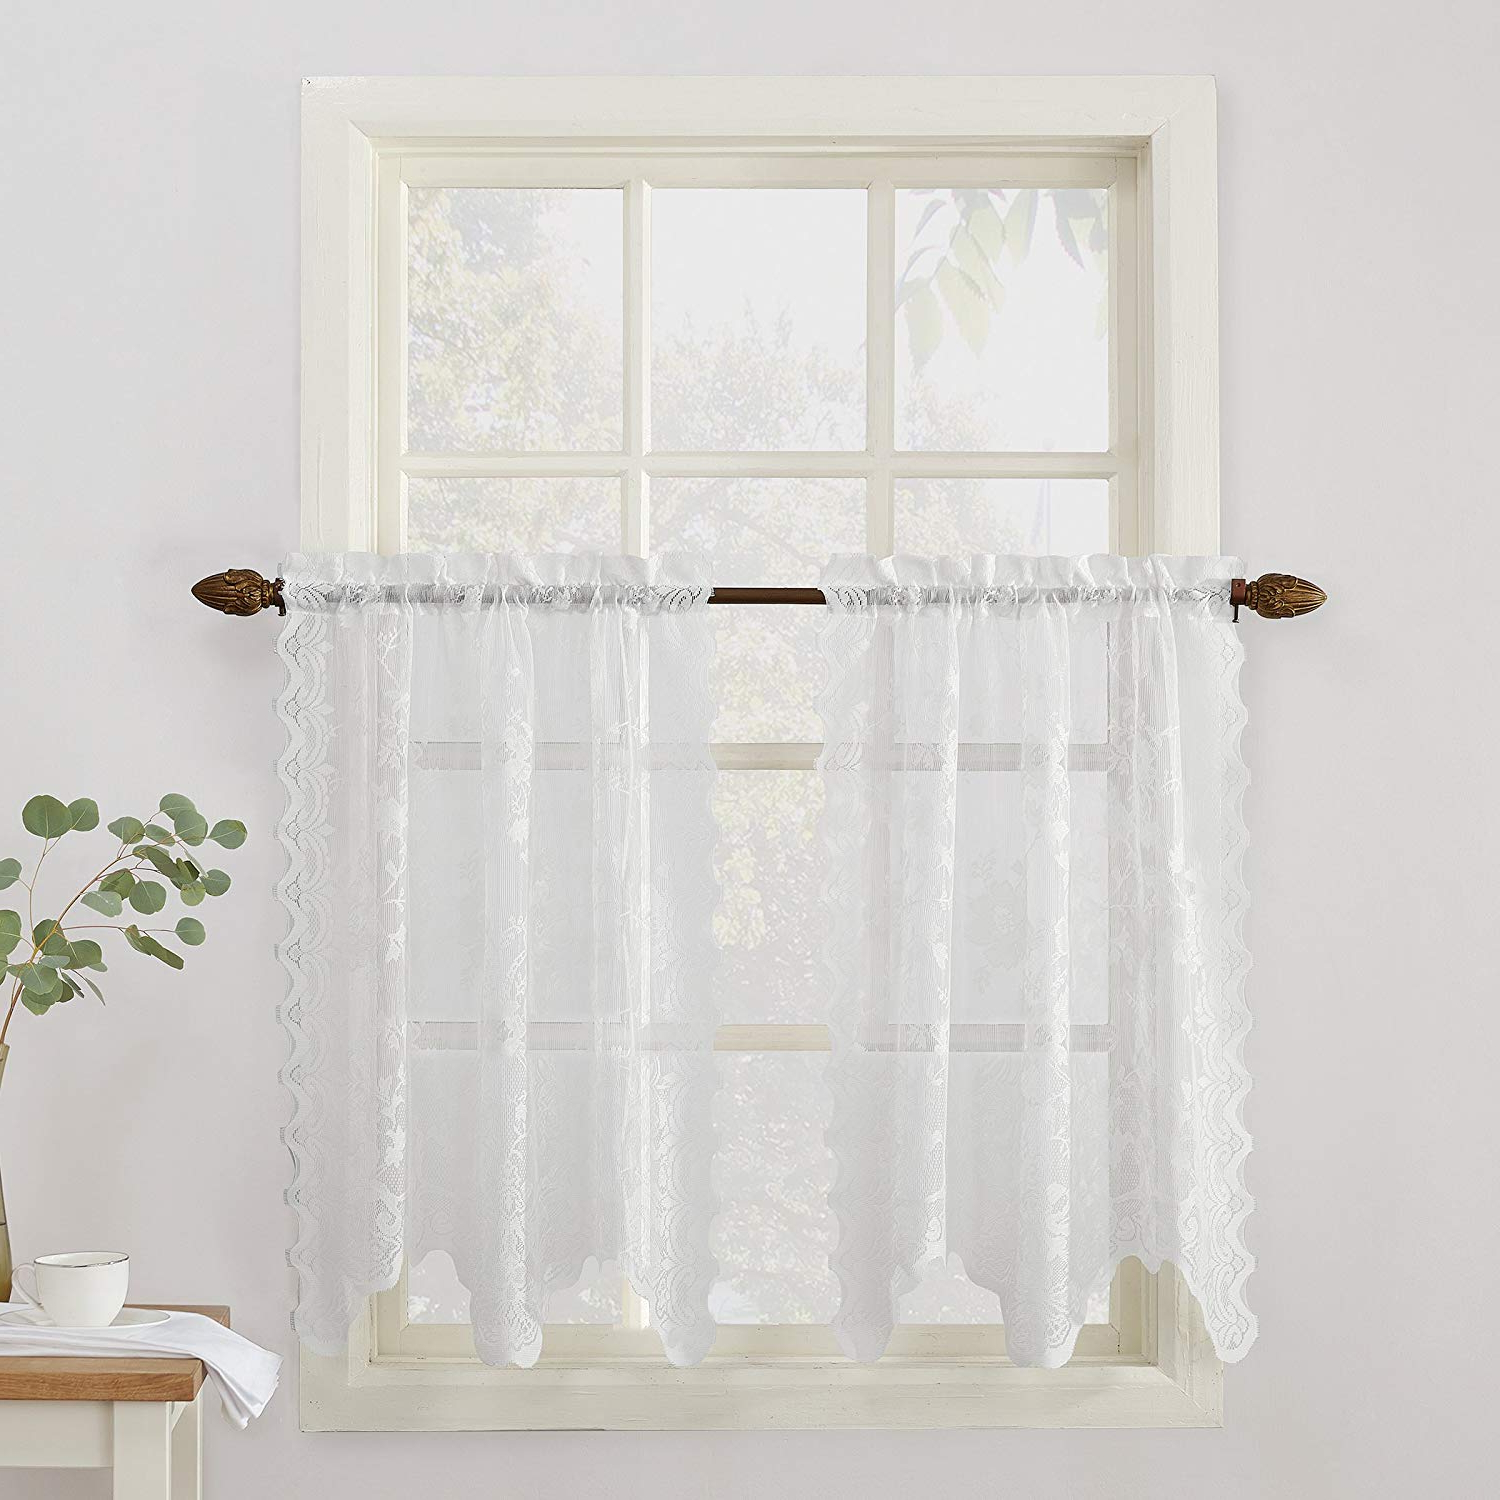 Popular Floral Embroidered Sheer Kitchen Curtain Tiers, Swags And Valances Within No (View 10 of 20)